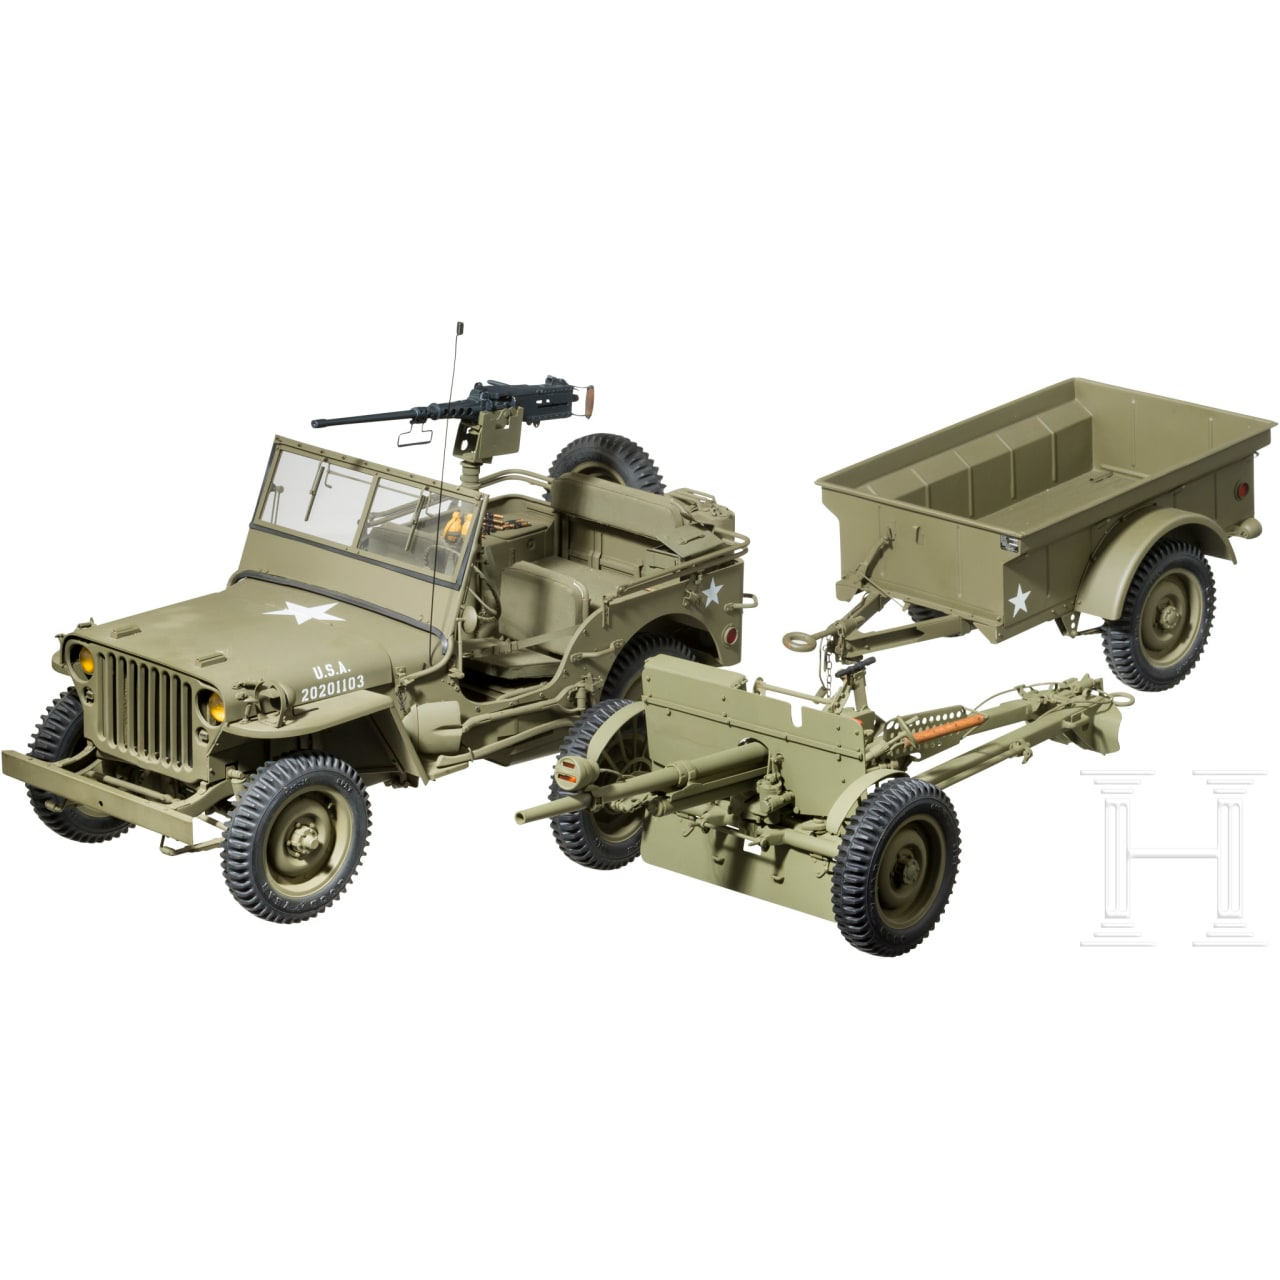 "A hand-constructed model of a Ford GPW ""Jeep"" with M2 Browning machine gun, 37 mm antitank gun and M 100 U.S. Army trailer"